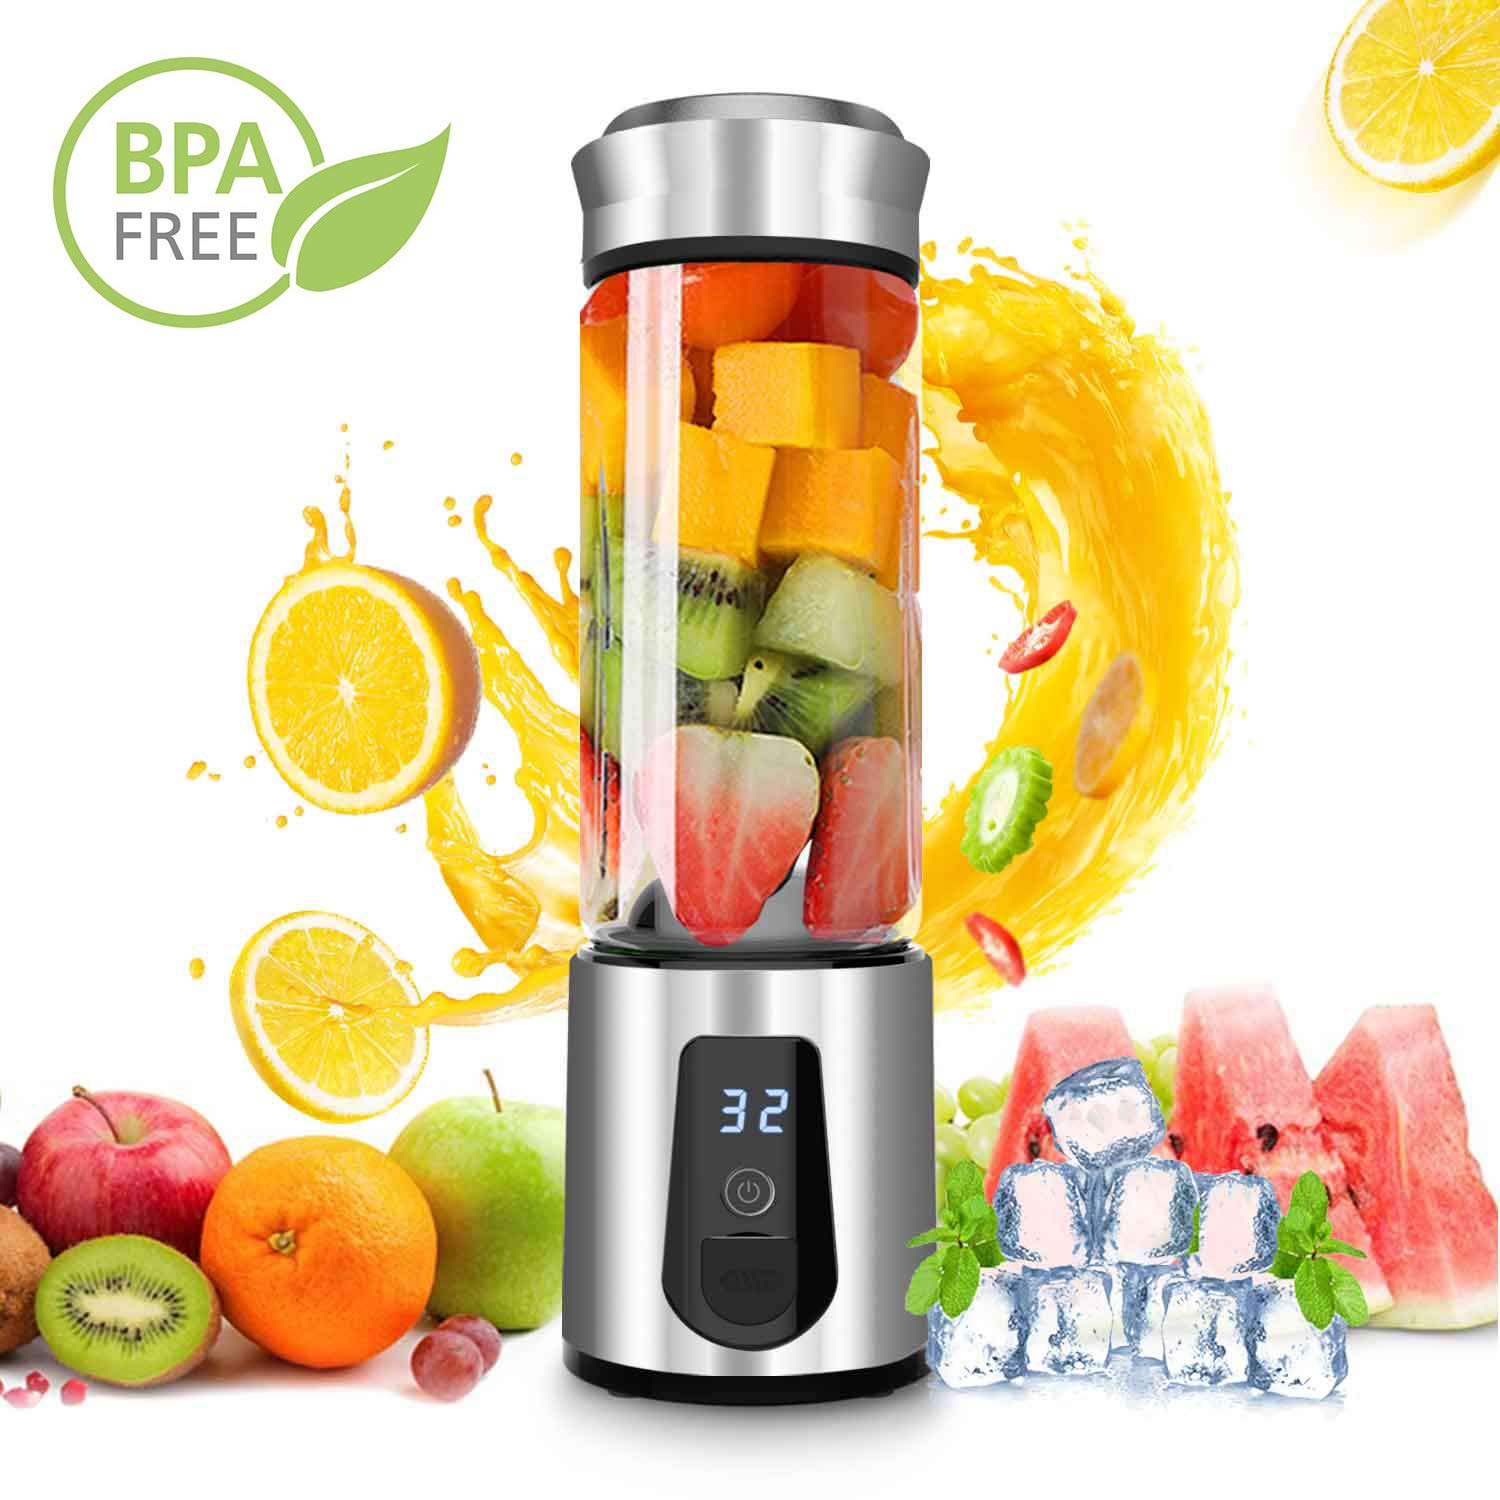 Blender Smoothie Maker,DOUHE USB Rechargeable Juicer Portable Blender